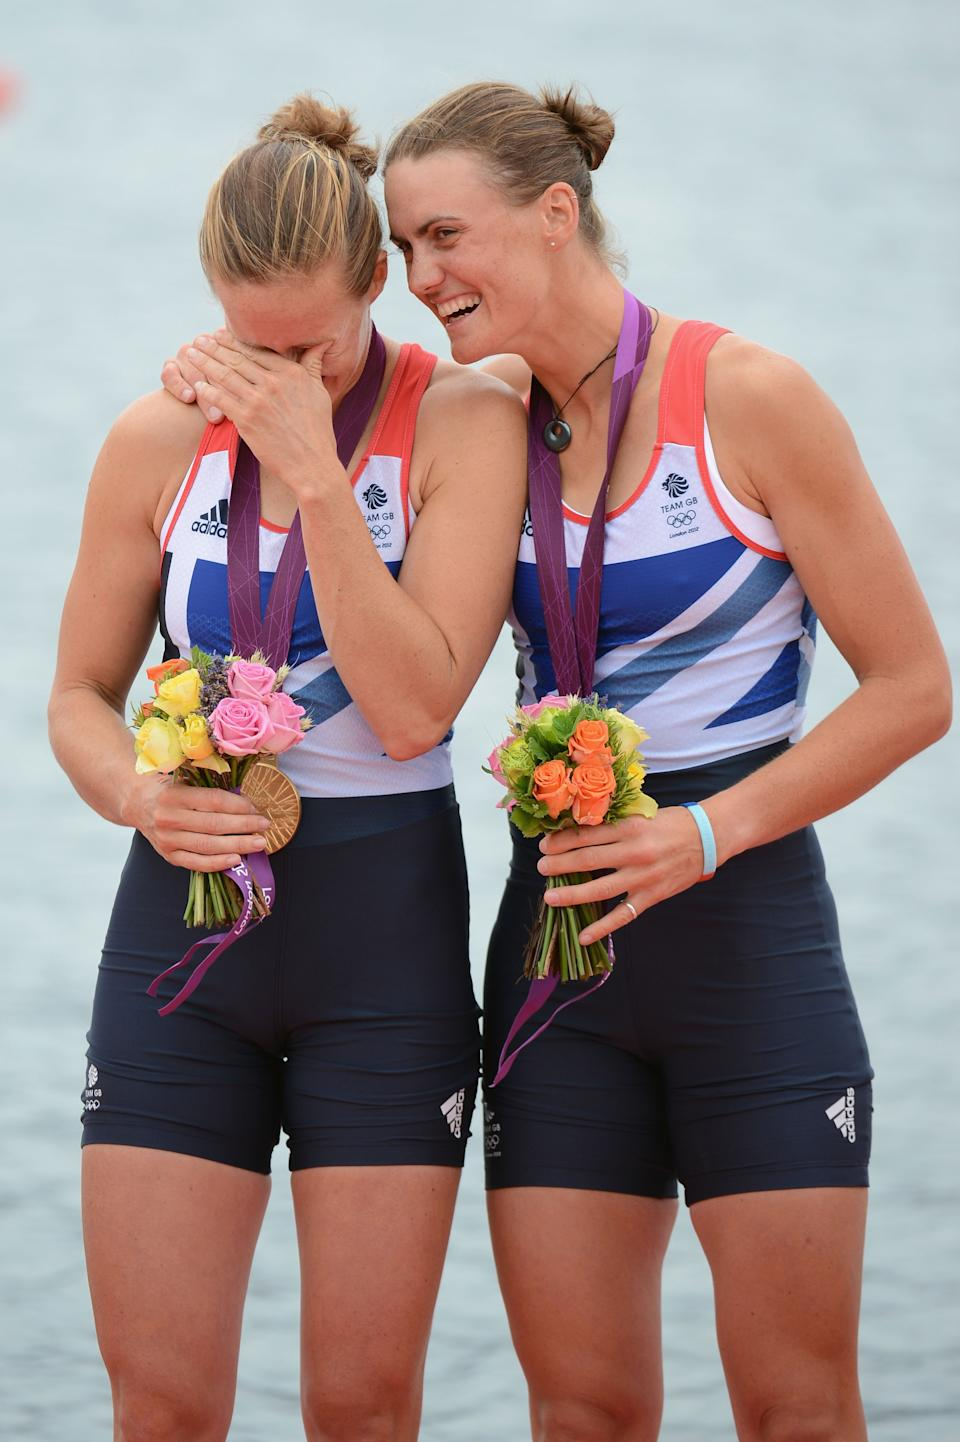 WINDSOR, ENGLAND - AUGUST 01: (L-R) Helen Glover and Heather Stanning of Great Britain celebrate with their gold medals during the medal ceremony after the Women's Pair Final A on Day 5 of the London 2012 Olympic Games at Eton Dorney on August 1, 2012 in Windsor, England. Australia won silver and New Zealand won bronze. (Photo by Harry How/Getty Images)